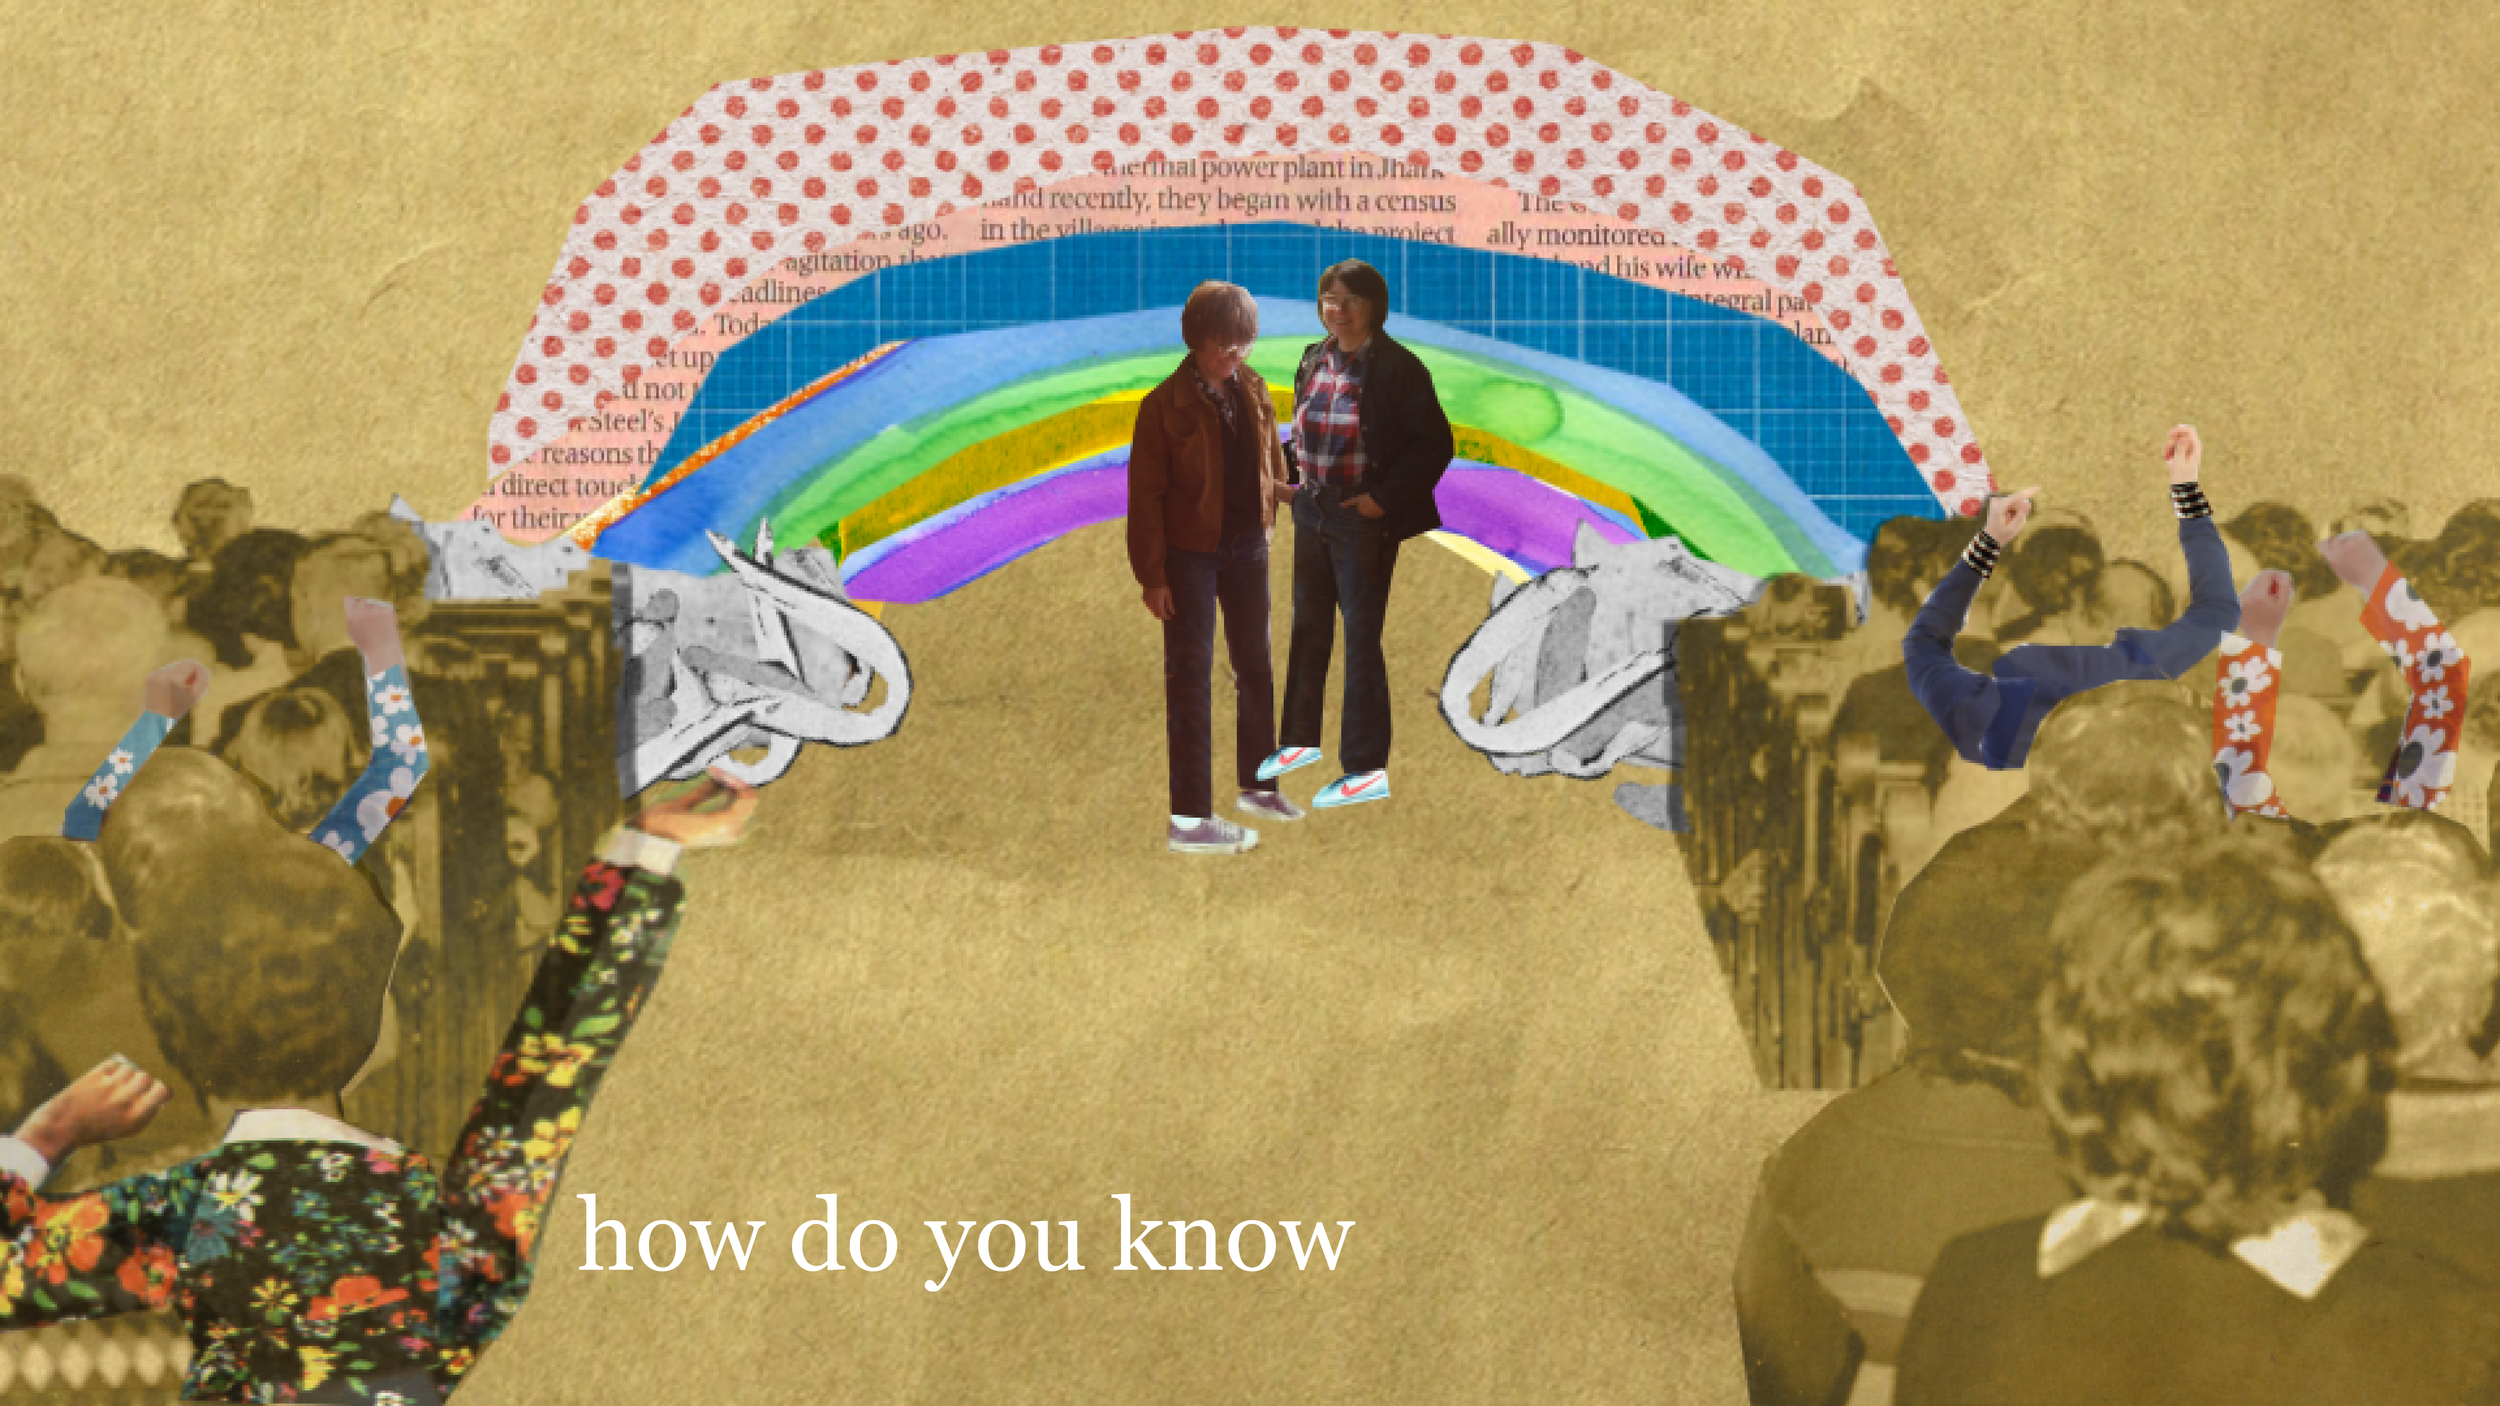 How Do You Know - How Do You Know seeks to reevaluate our modern-day conception of marriage by exploring the social, legislative, economic, and personal forces that drive people to — or away from — formalizing intimate partnerships through the state.